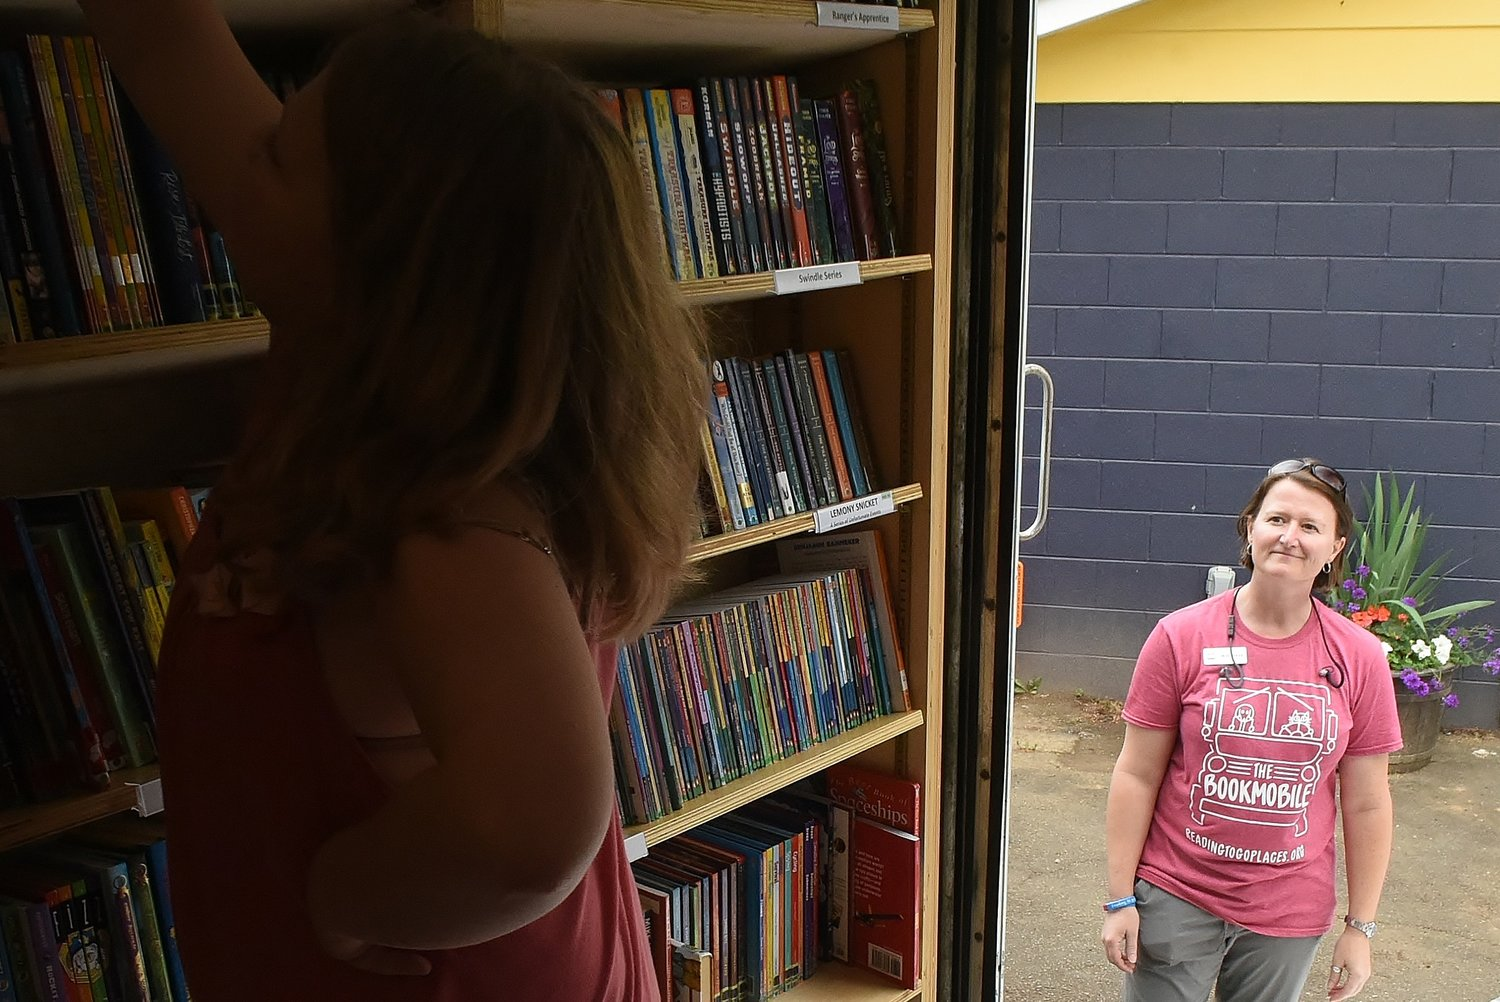 Valerie Gilreath, founder of The Bookmobile, smiles as a young reader selects a book from the shelves of the mobile library at the SPARK Community Center Monday afternoon.